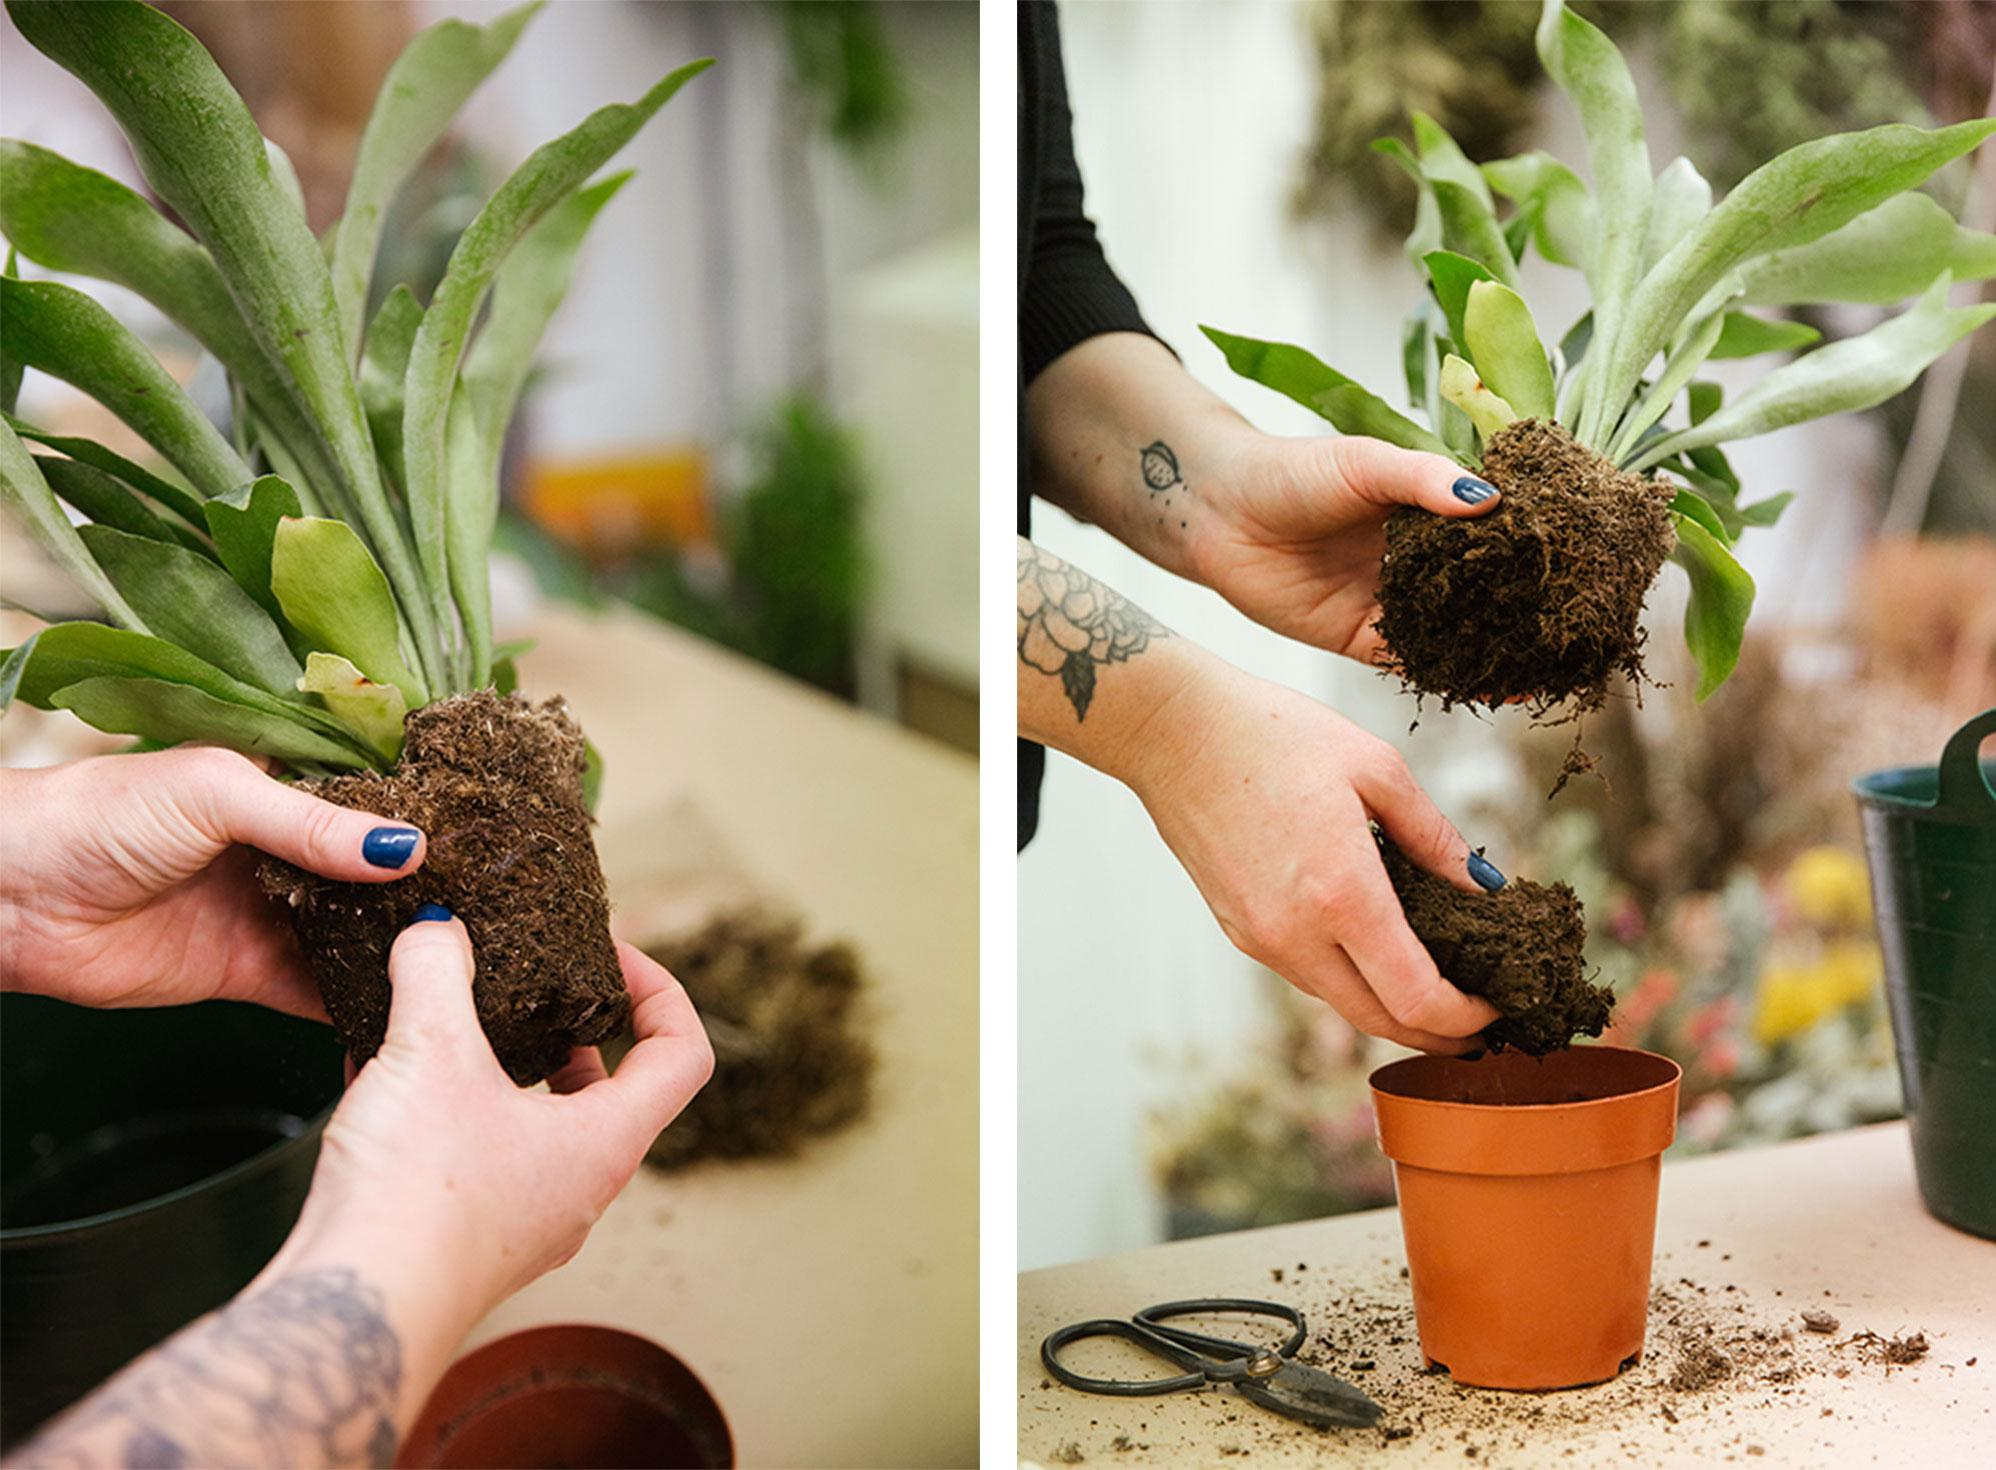 Start decanting the plant from its pot, making sure to separate the soil